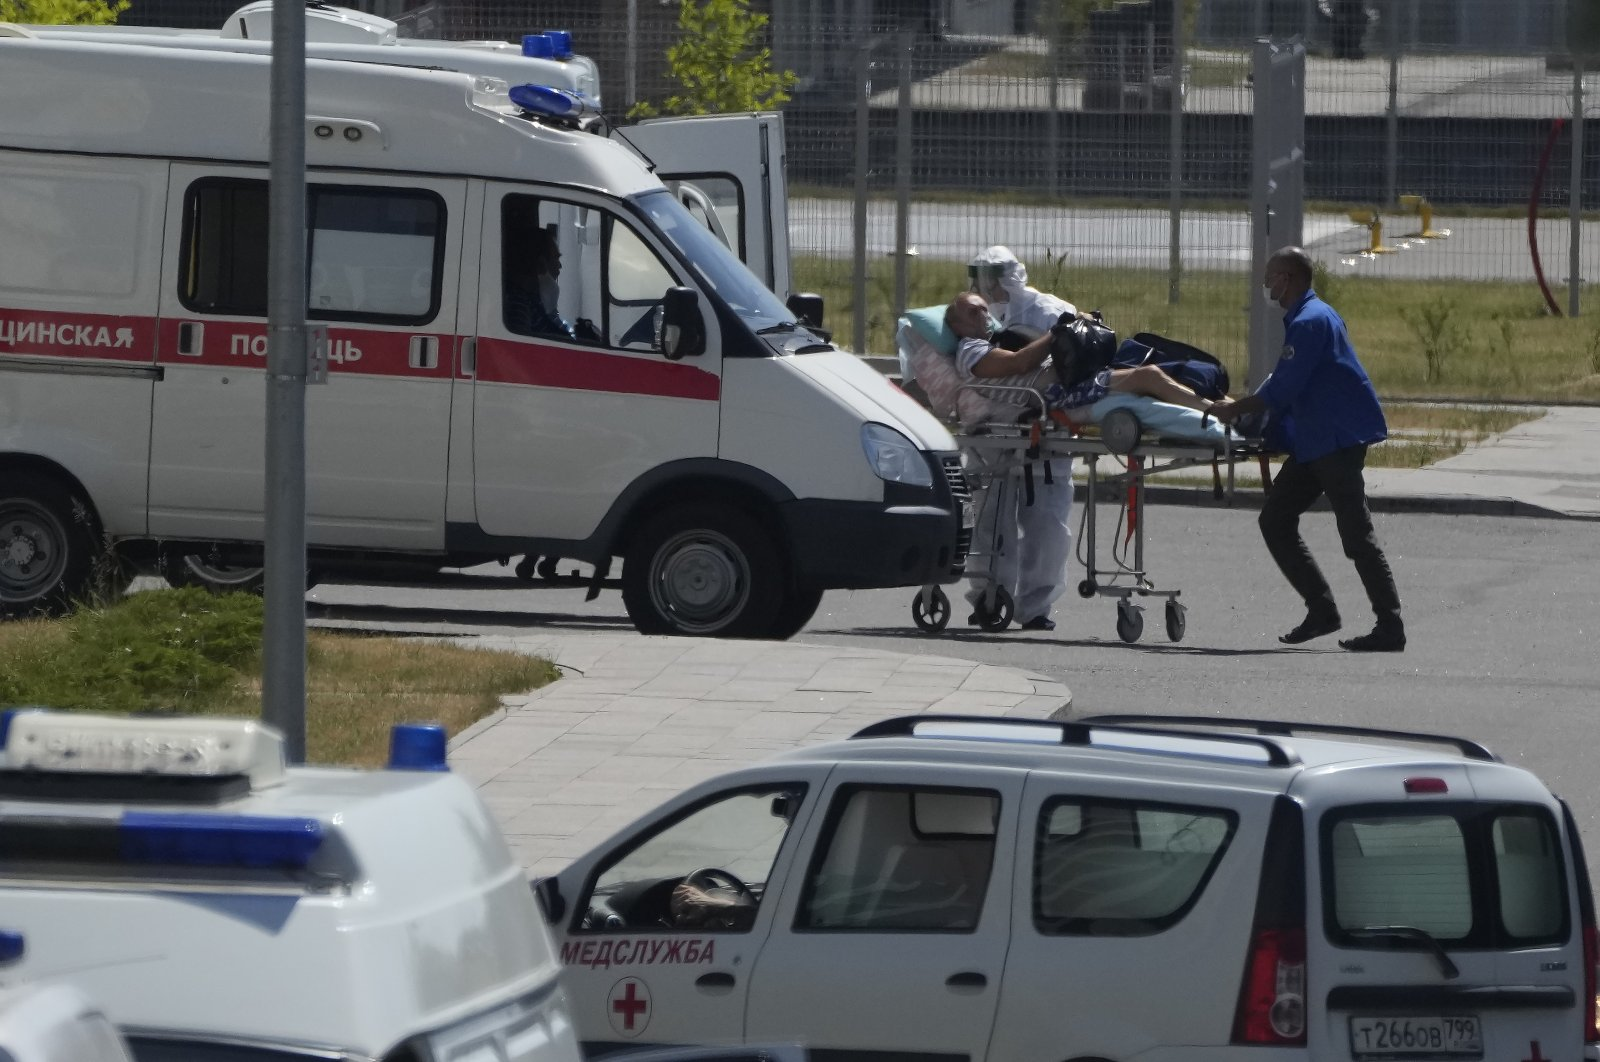 A medical worker wearing protective gear escorts a man, suspected of having COVID-19, at a hospital in Kommunarka, outside Moscow, Russia, July 12, 2021. (AP Photo)